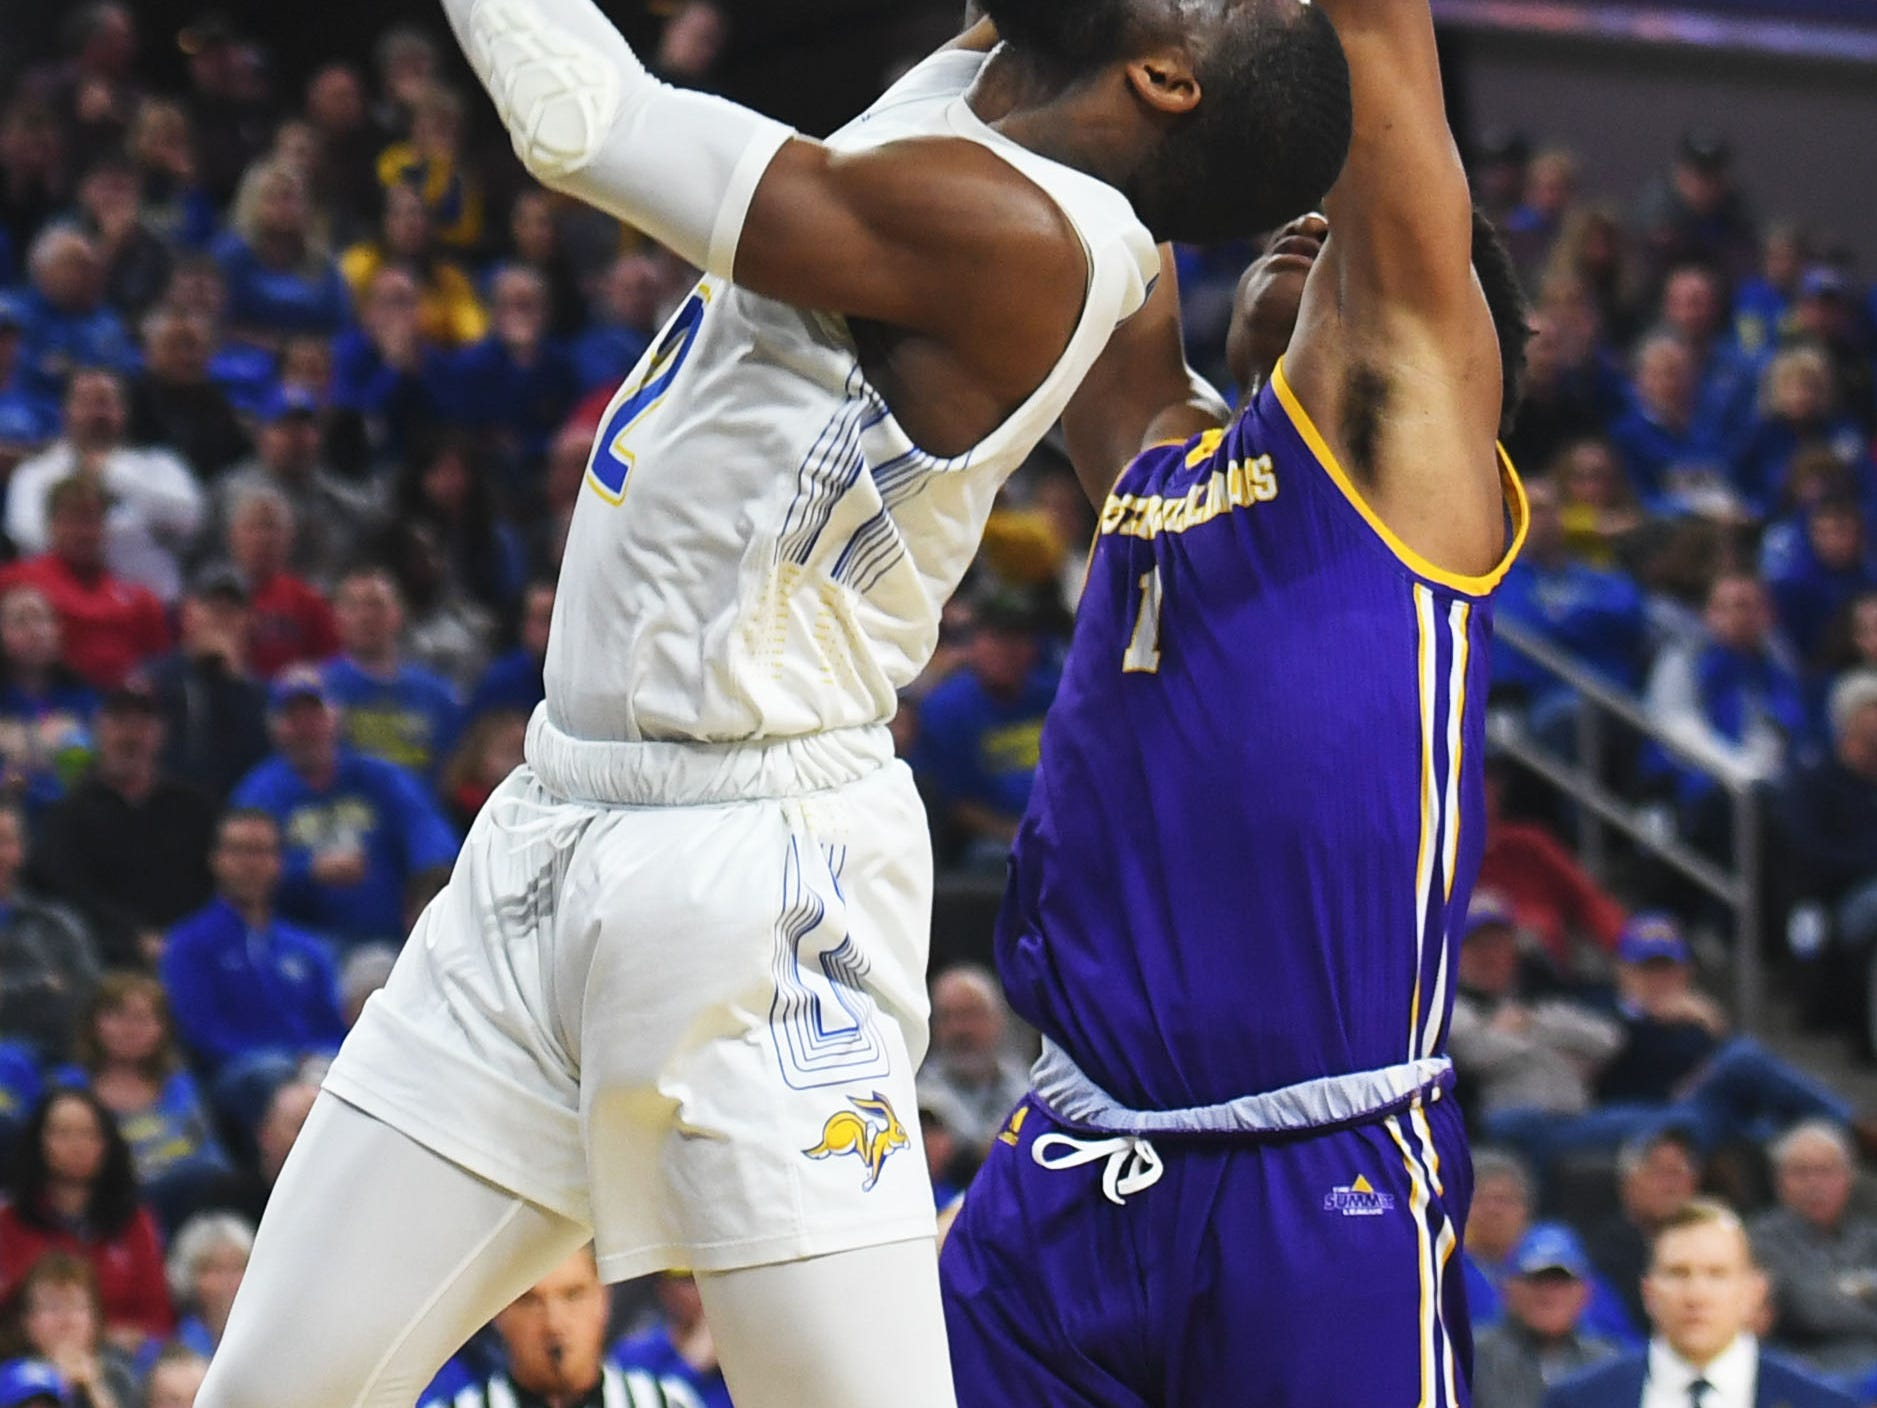 SDSU's Tevin King attempts to score against Western Illinois Saturday, March 9, in the Summit League tournament at the Denny Sanford Premier Center in Sioux Falls.